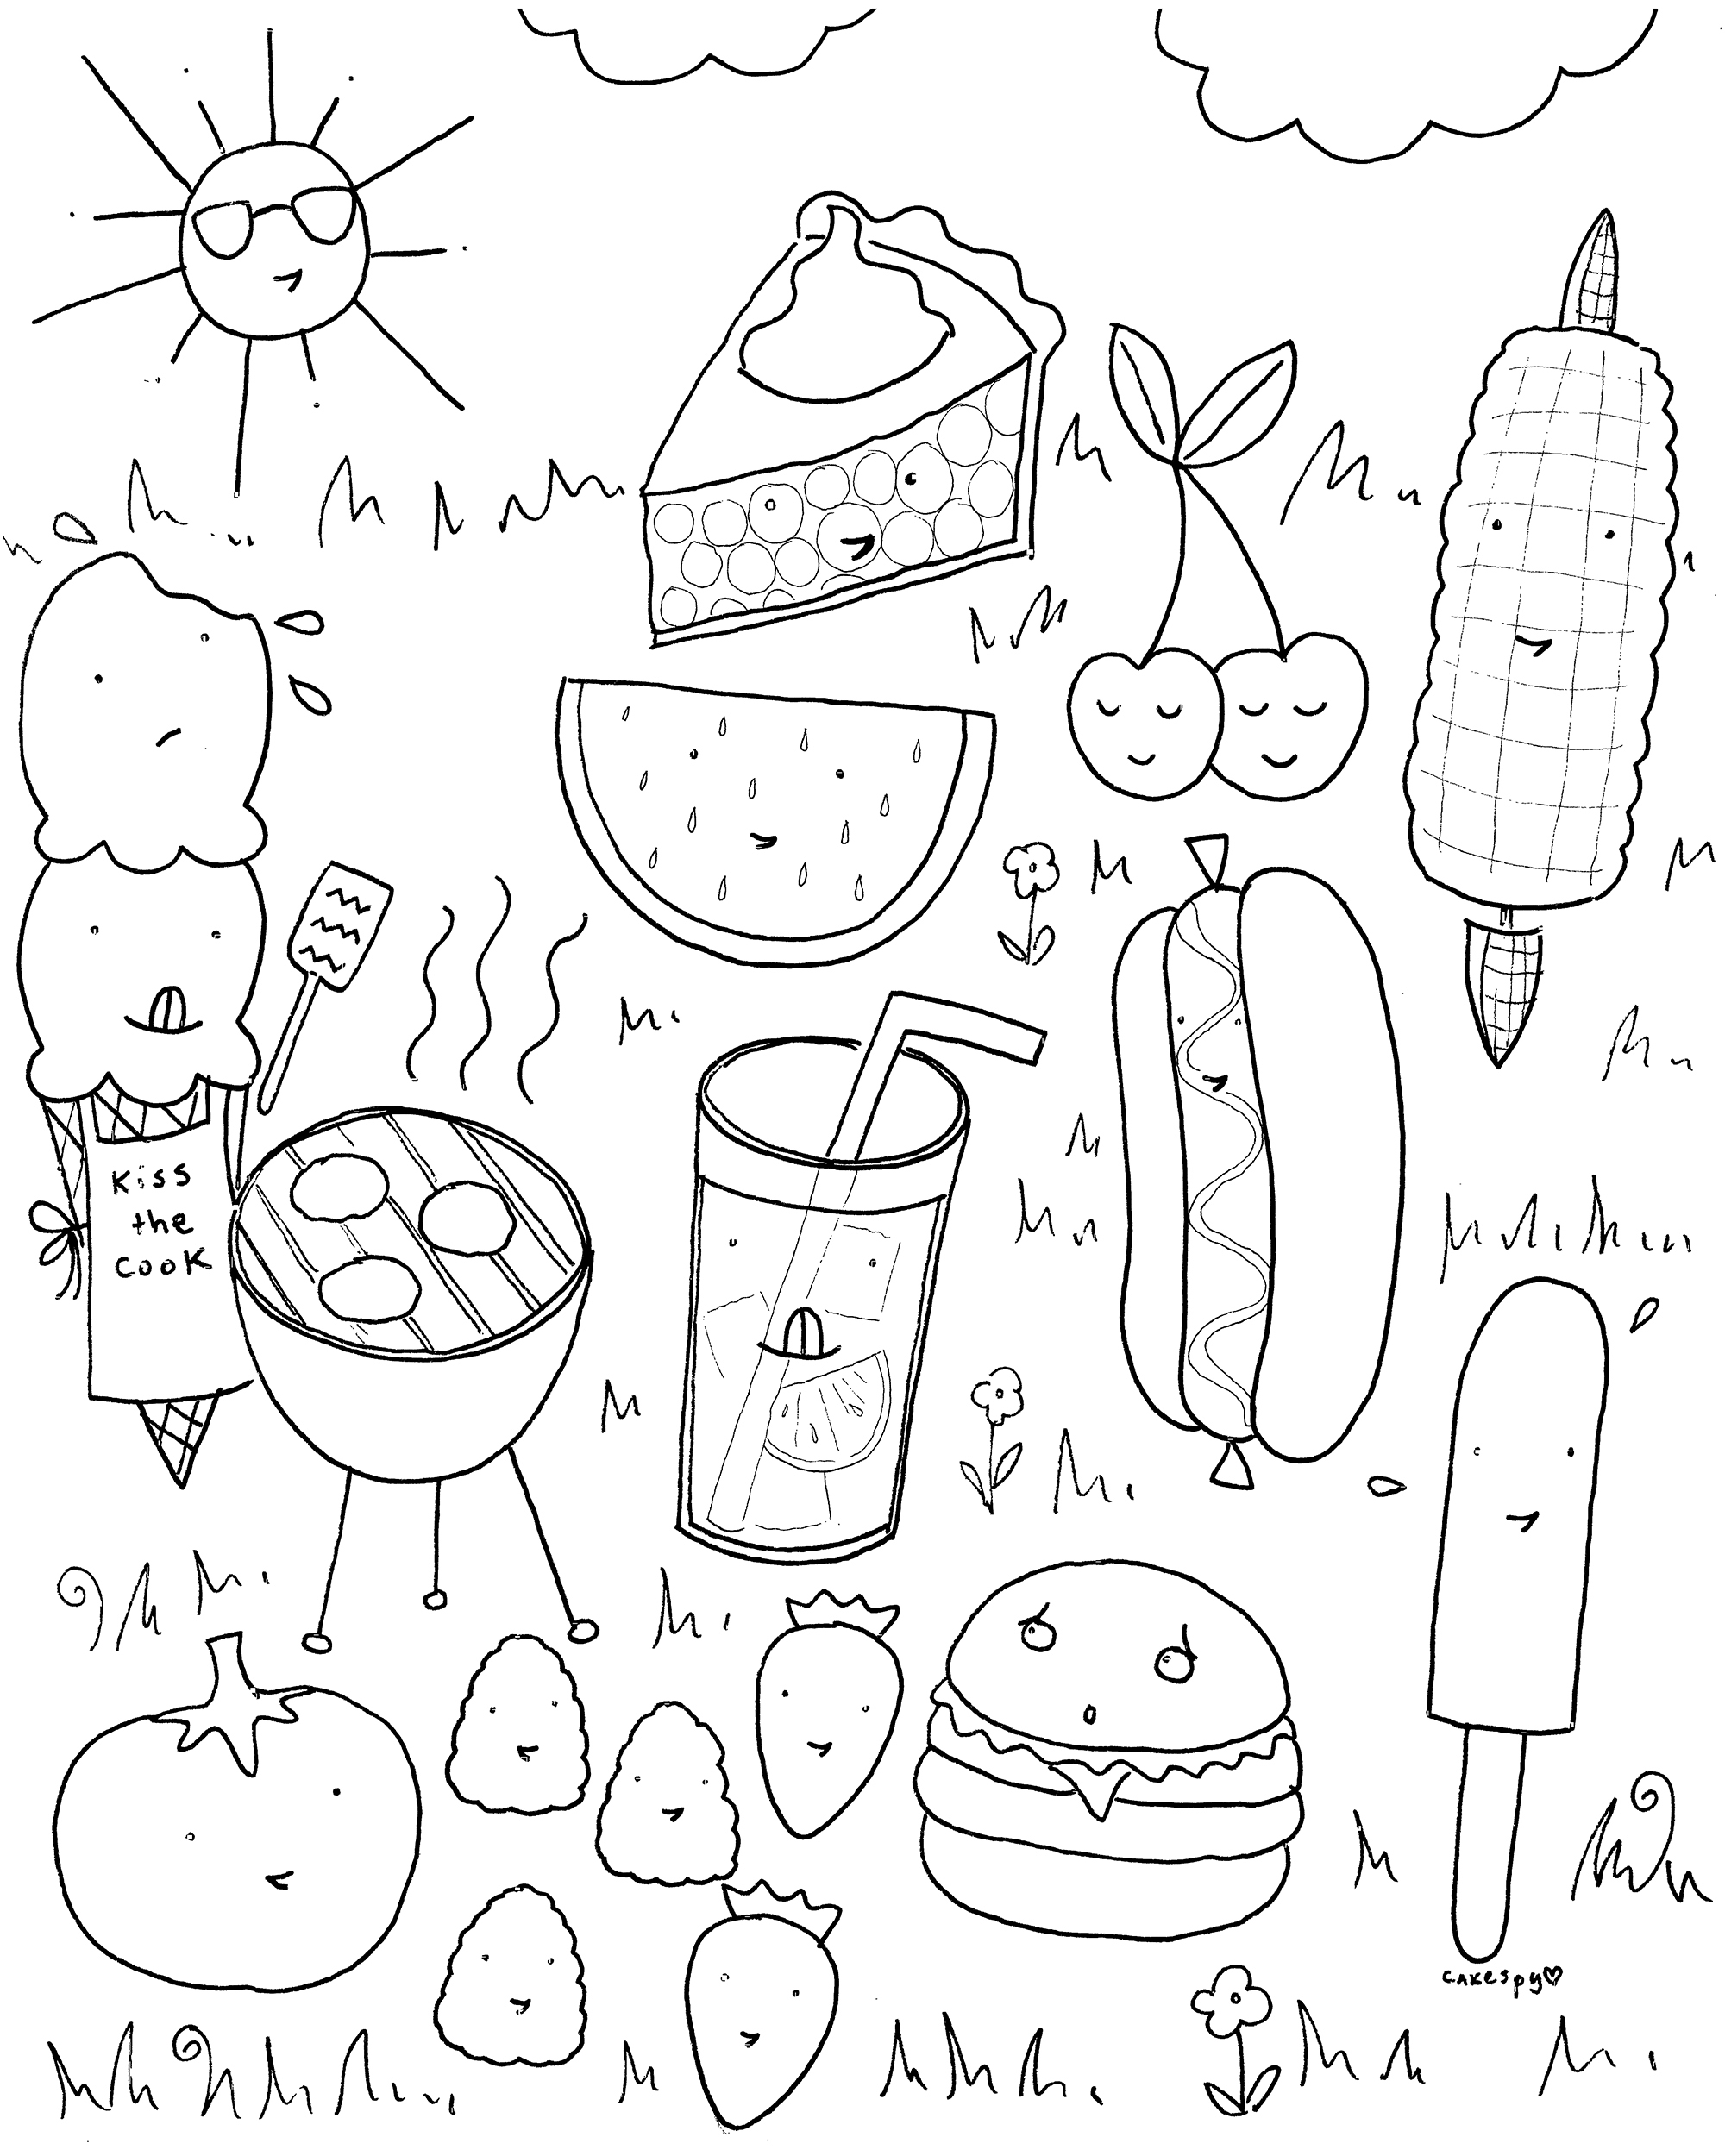 Summer Coloring Pages At Getdrawings Com Free For Personal Use